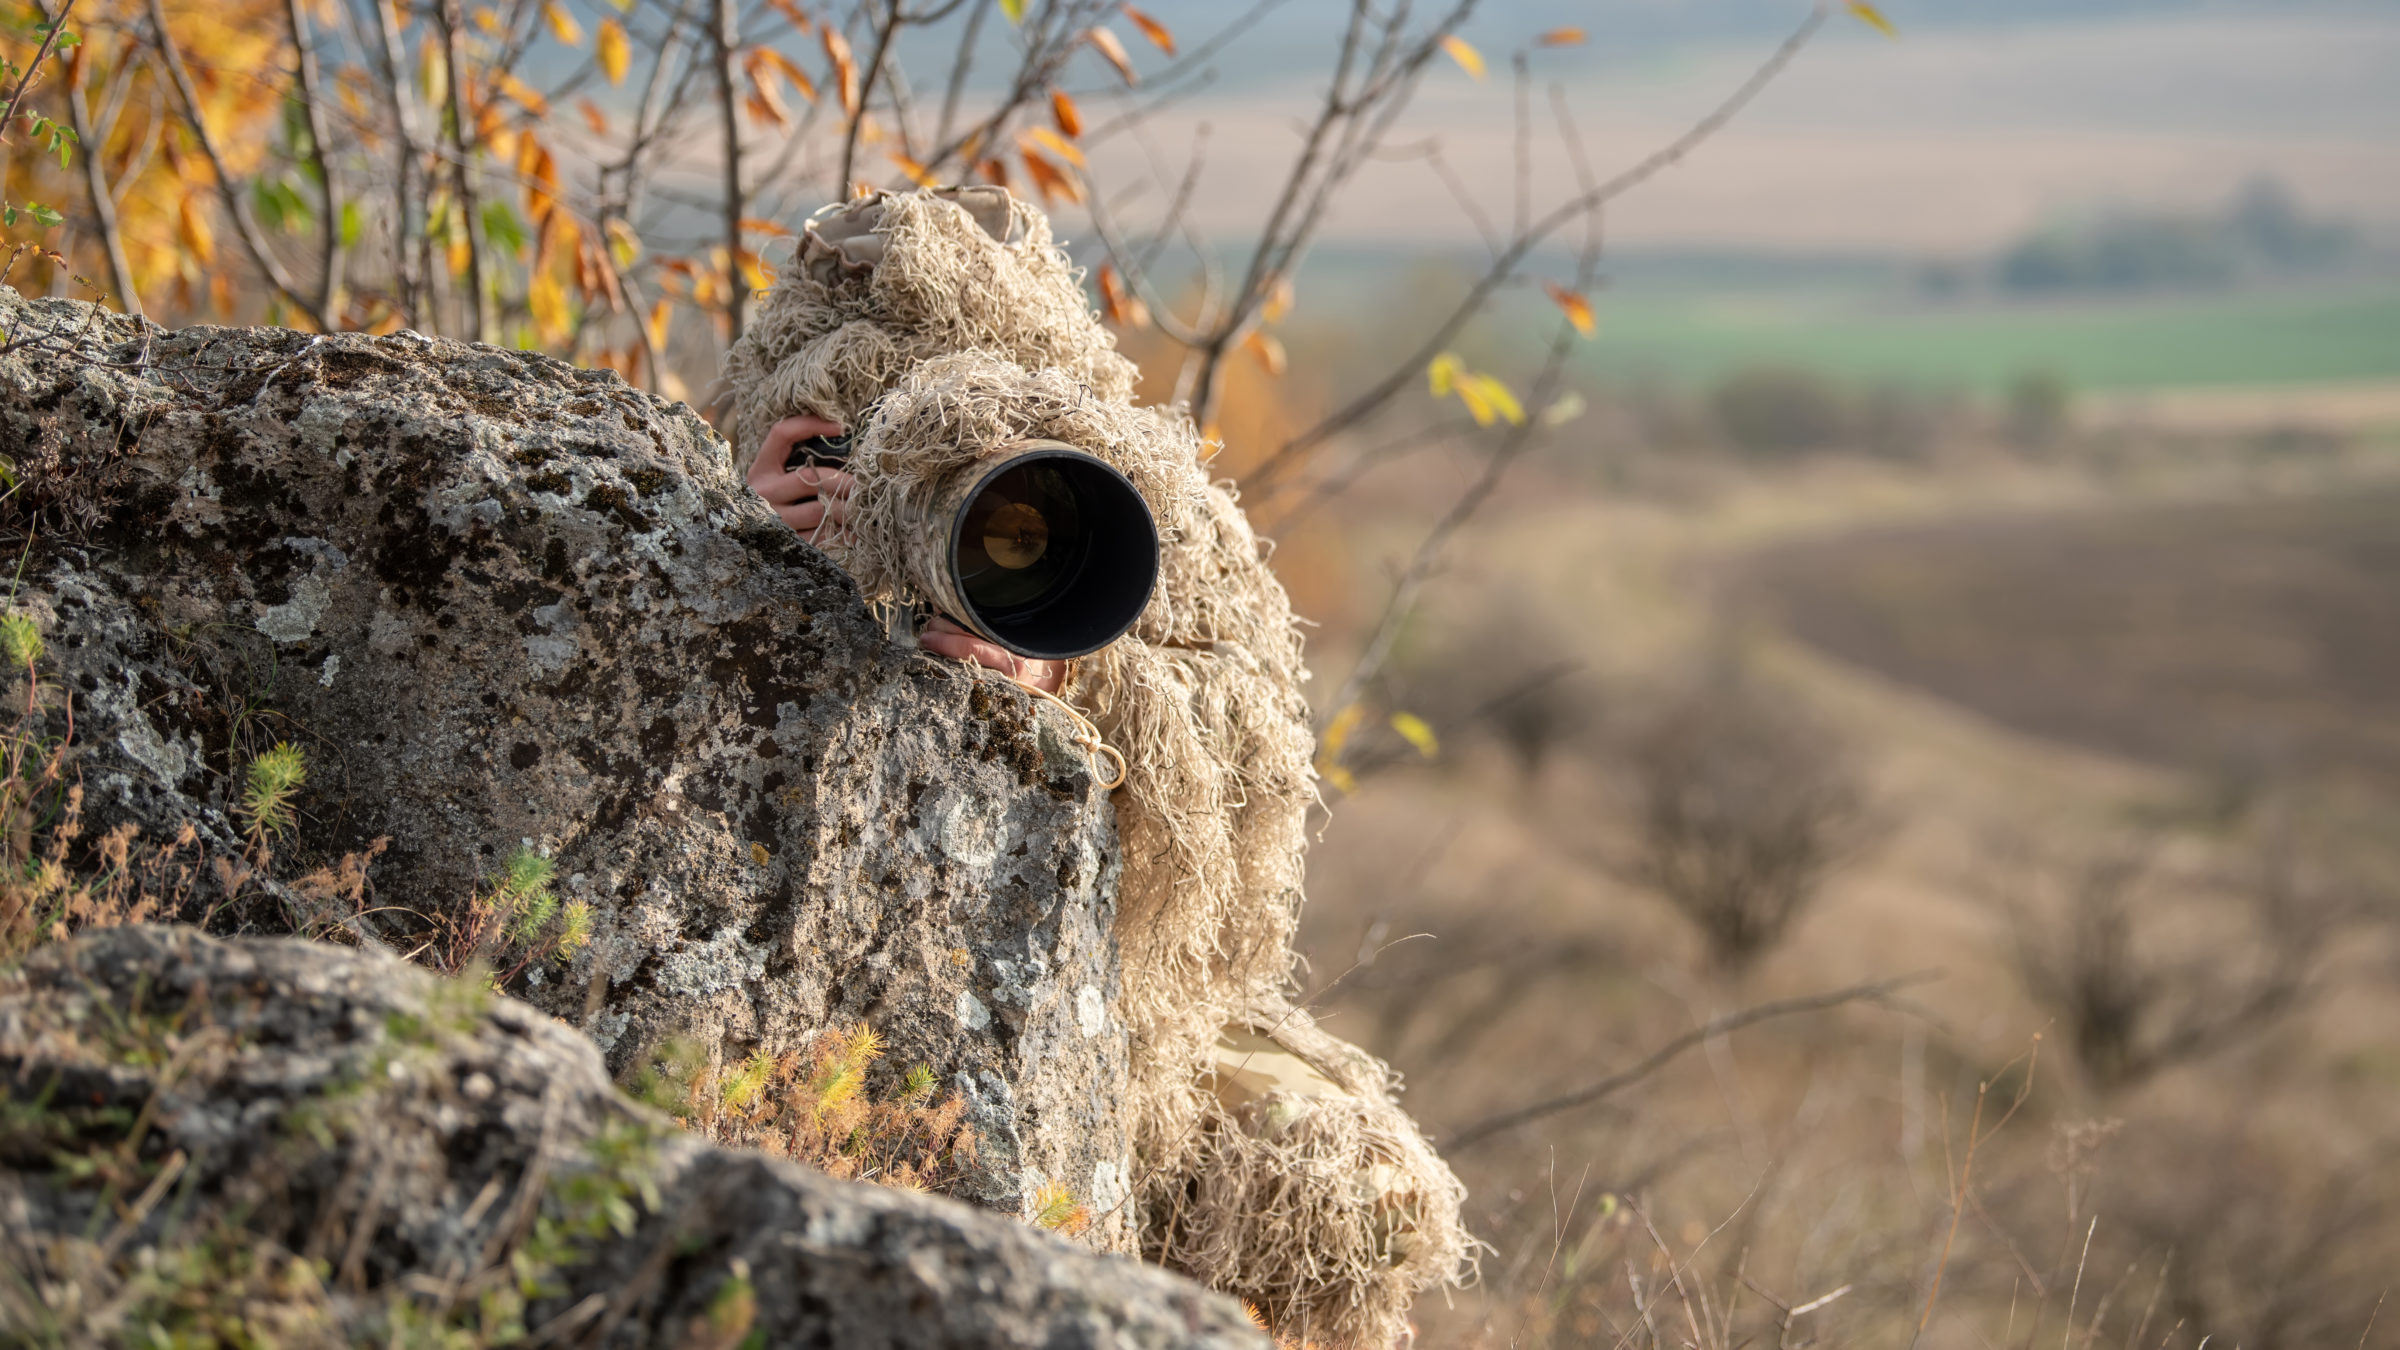 wildlife photographer in the ghillie suit working CY2458L